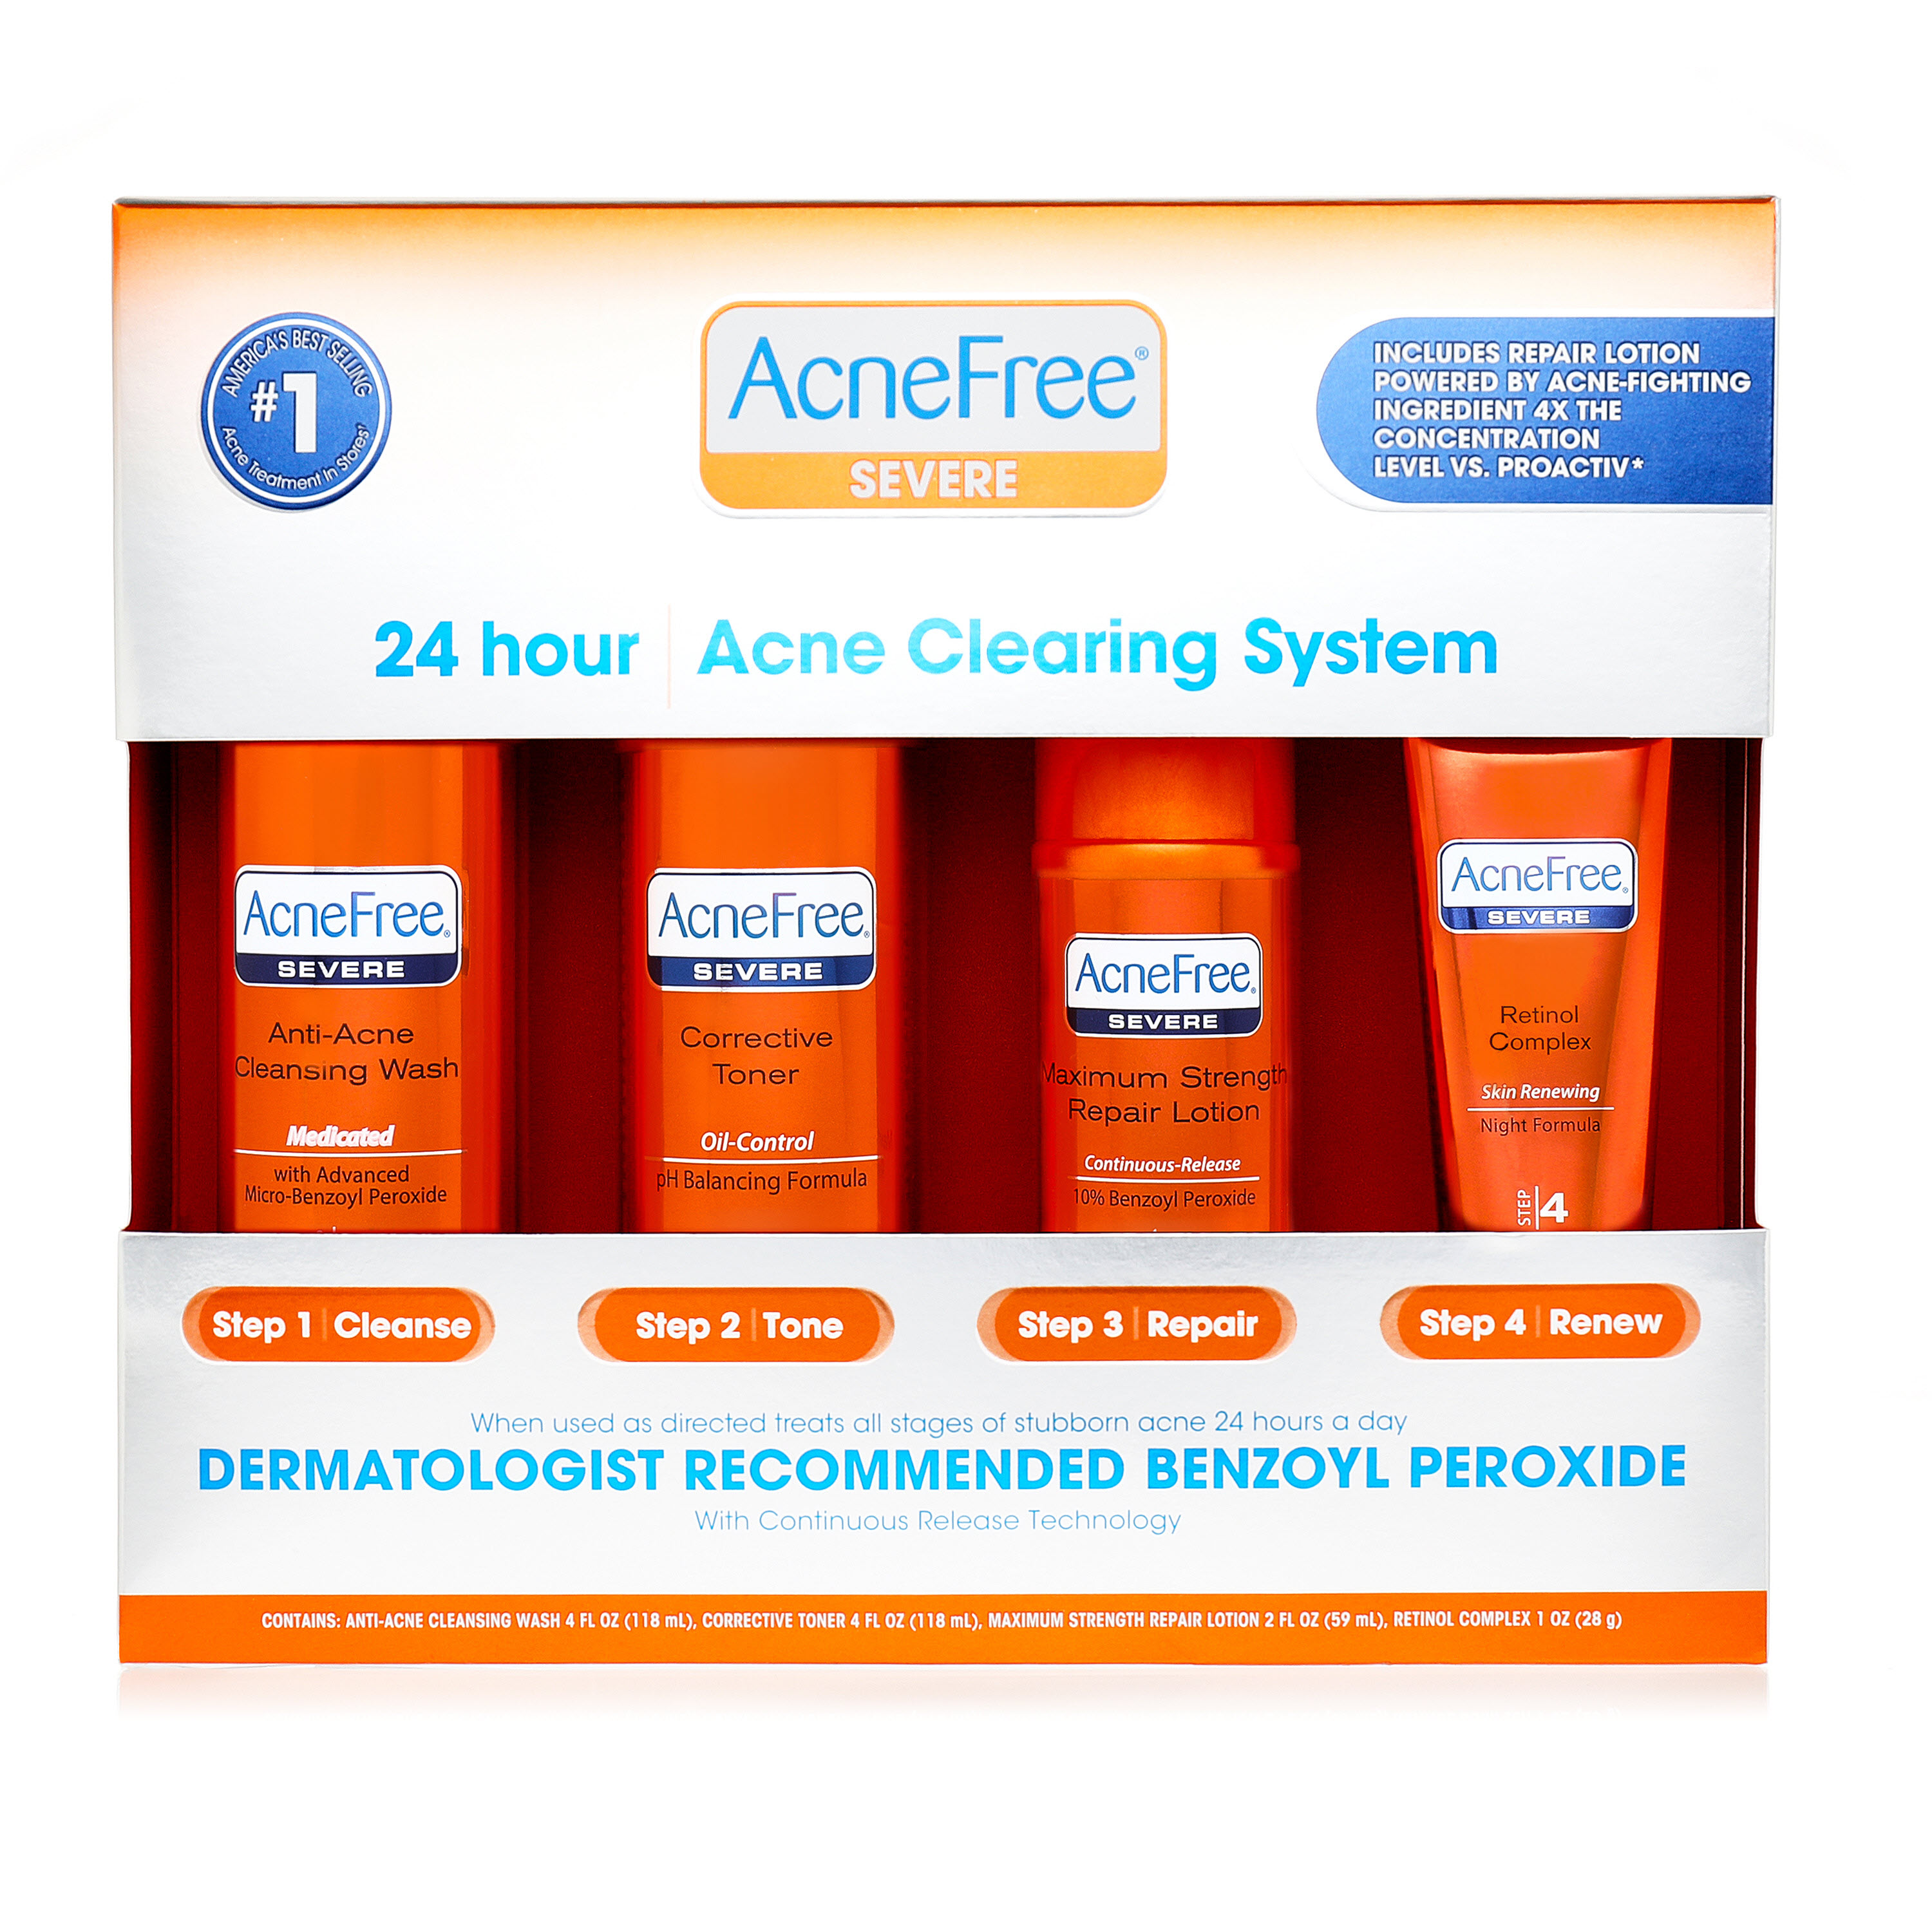 AcneFree 24 Hour Acne Clearing System for Severe Acne with Benzoyl Peroxide and Retinol - 4 CT